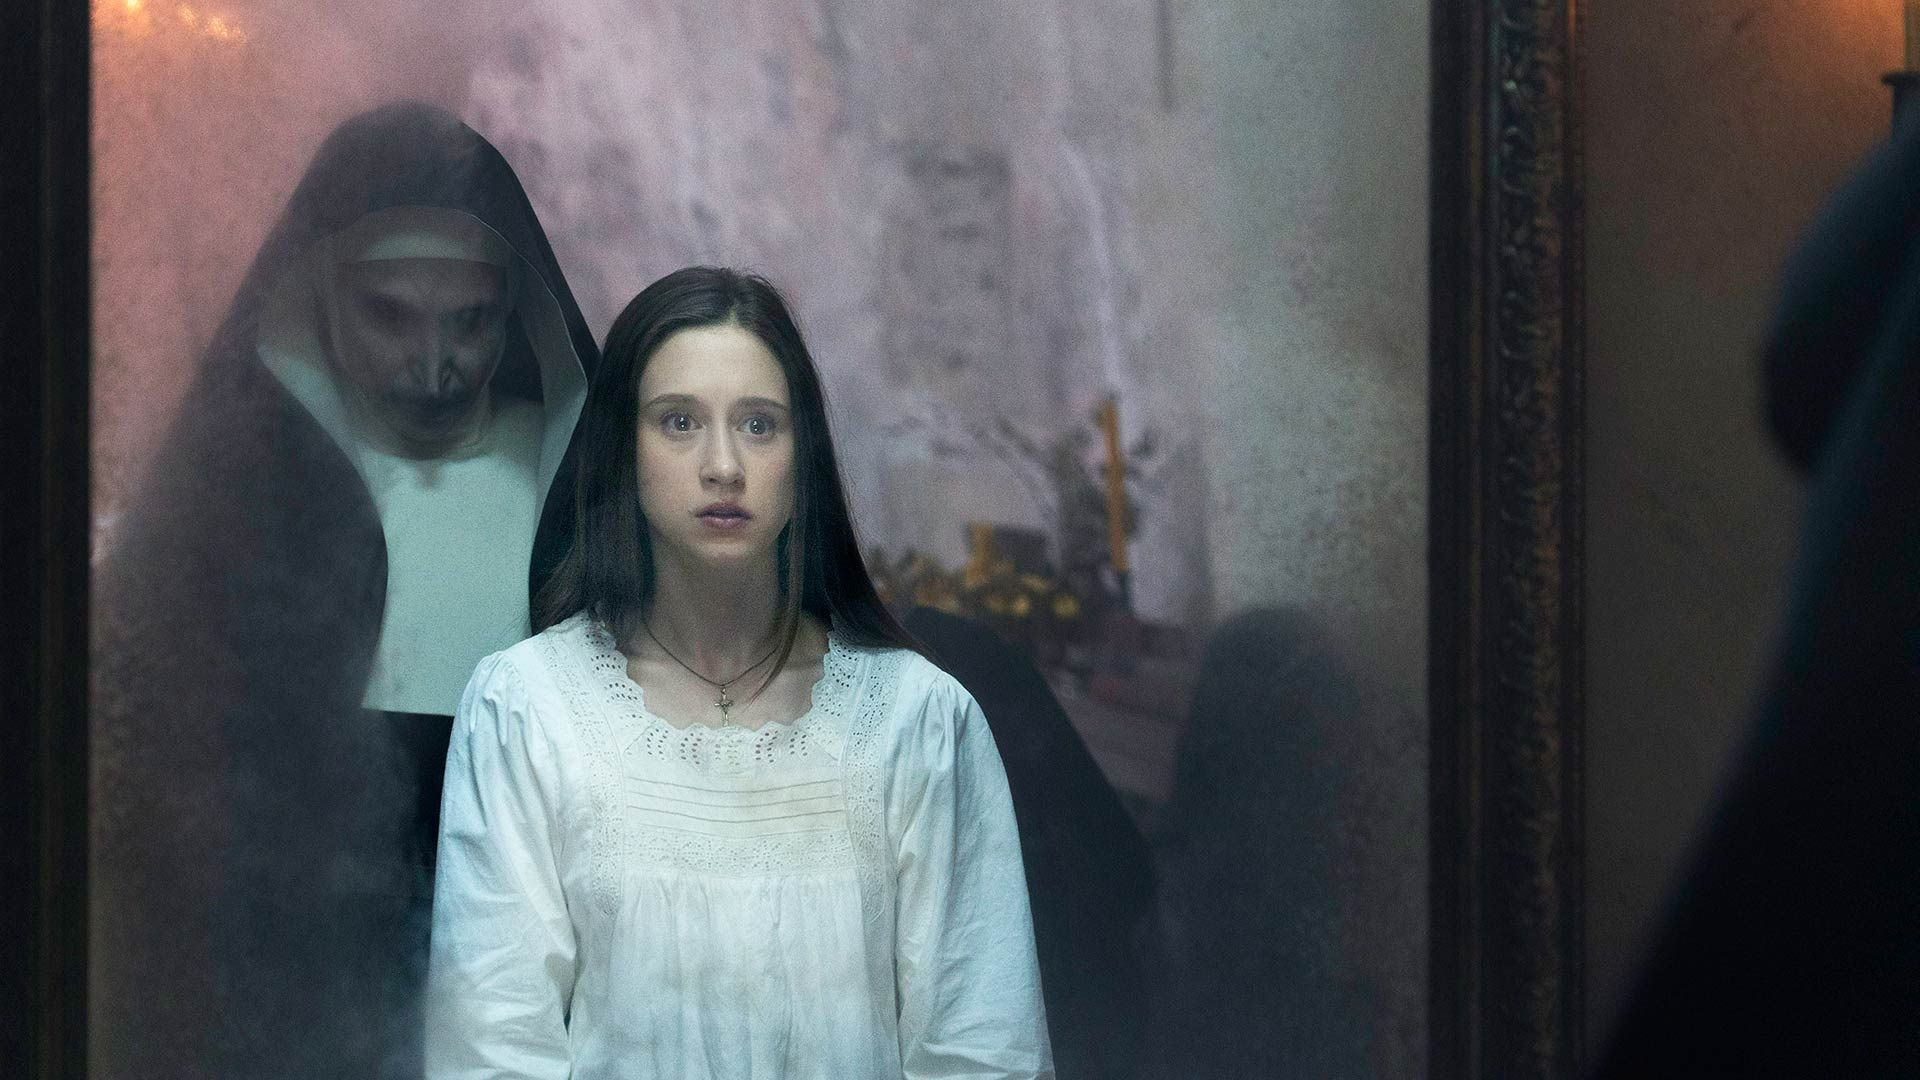 The Conjuring Movies in Order: The Nun